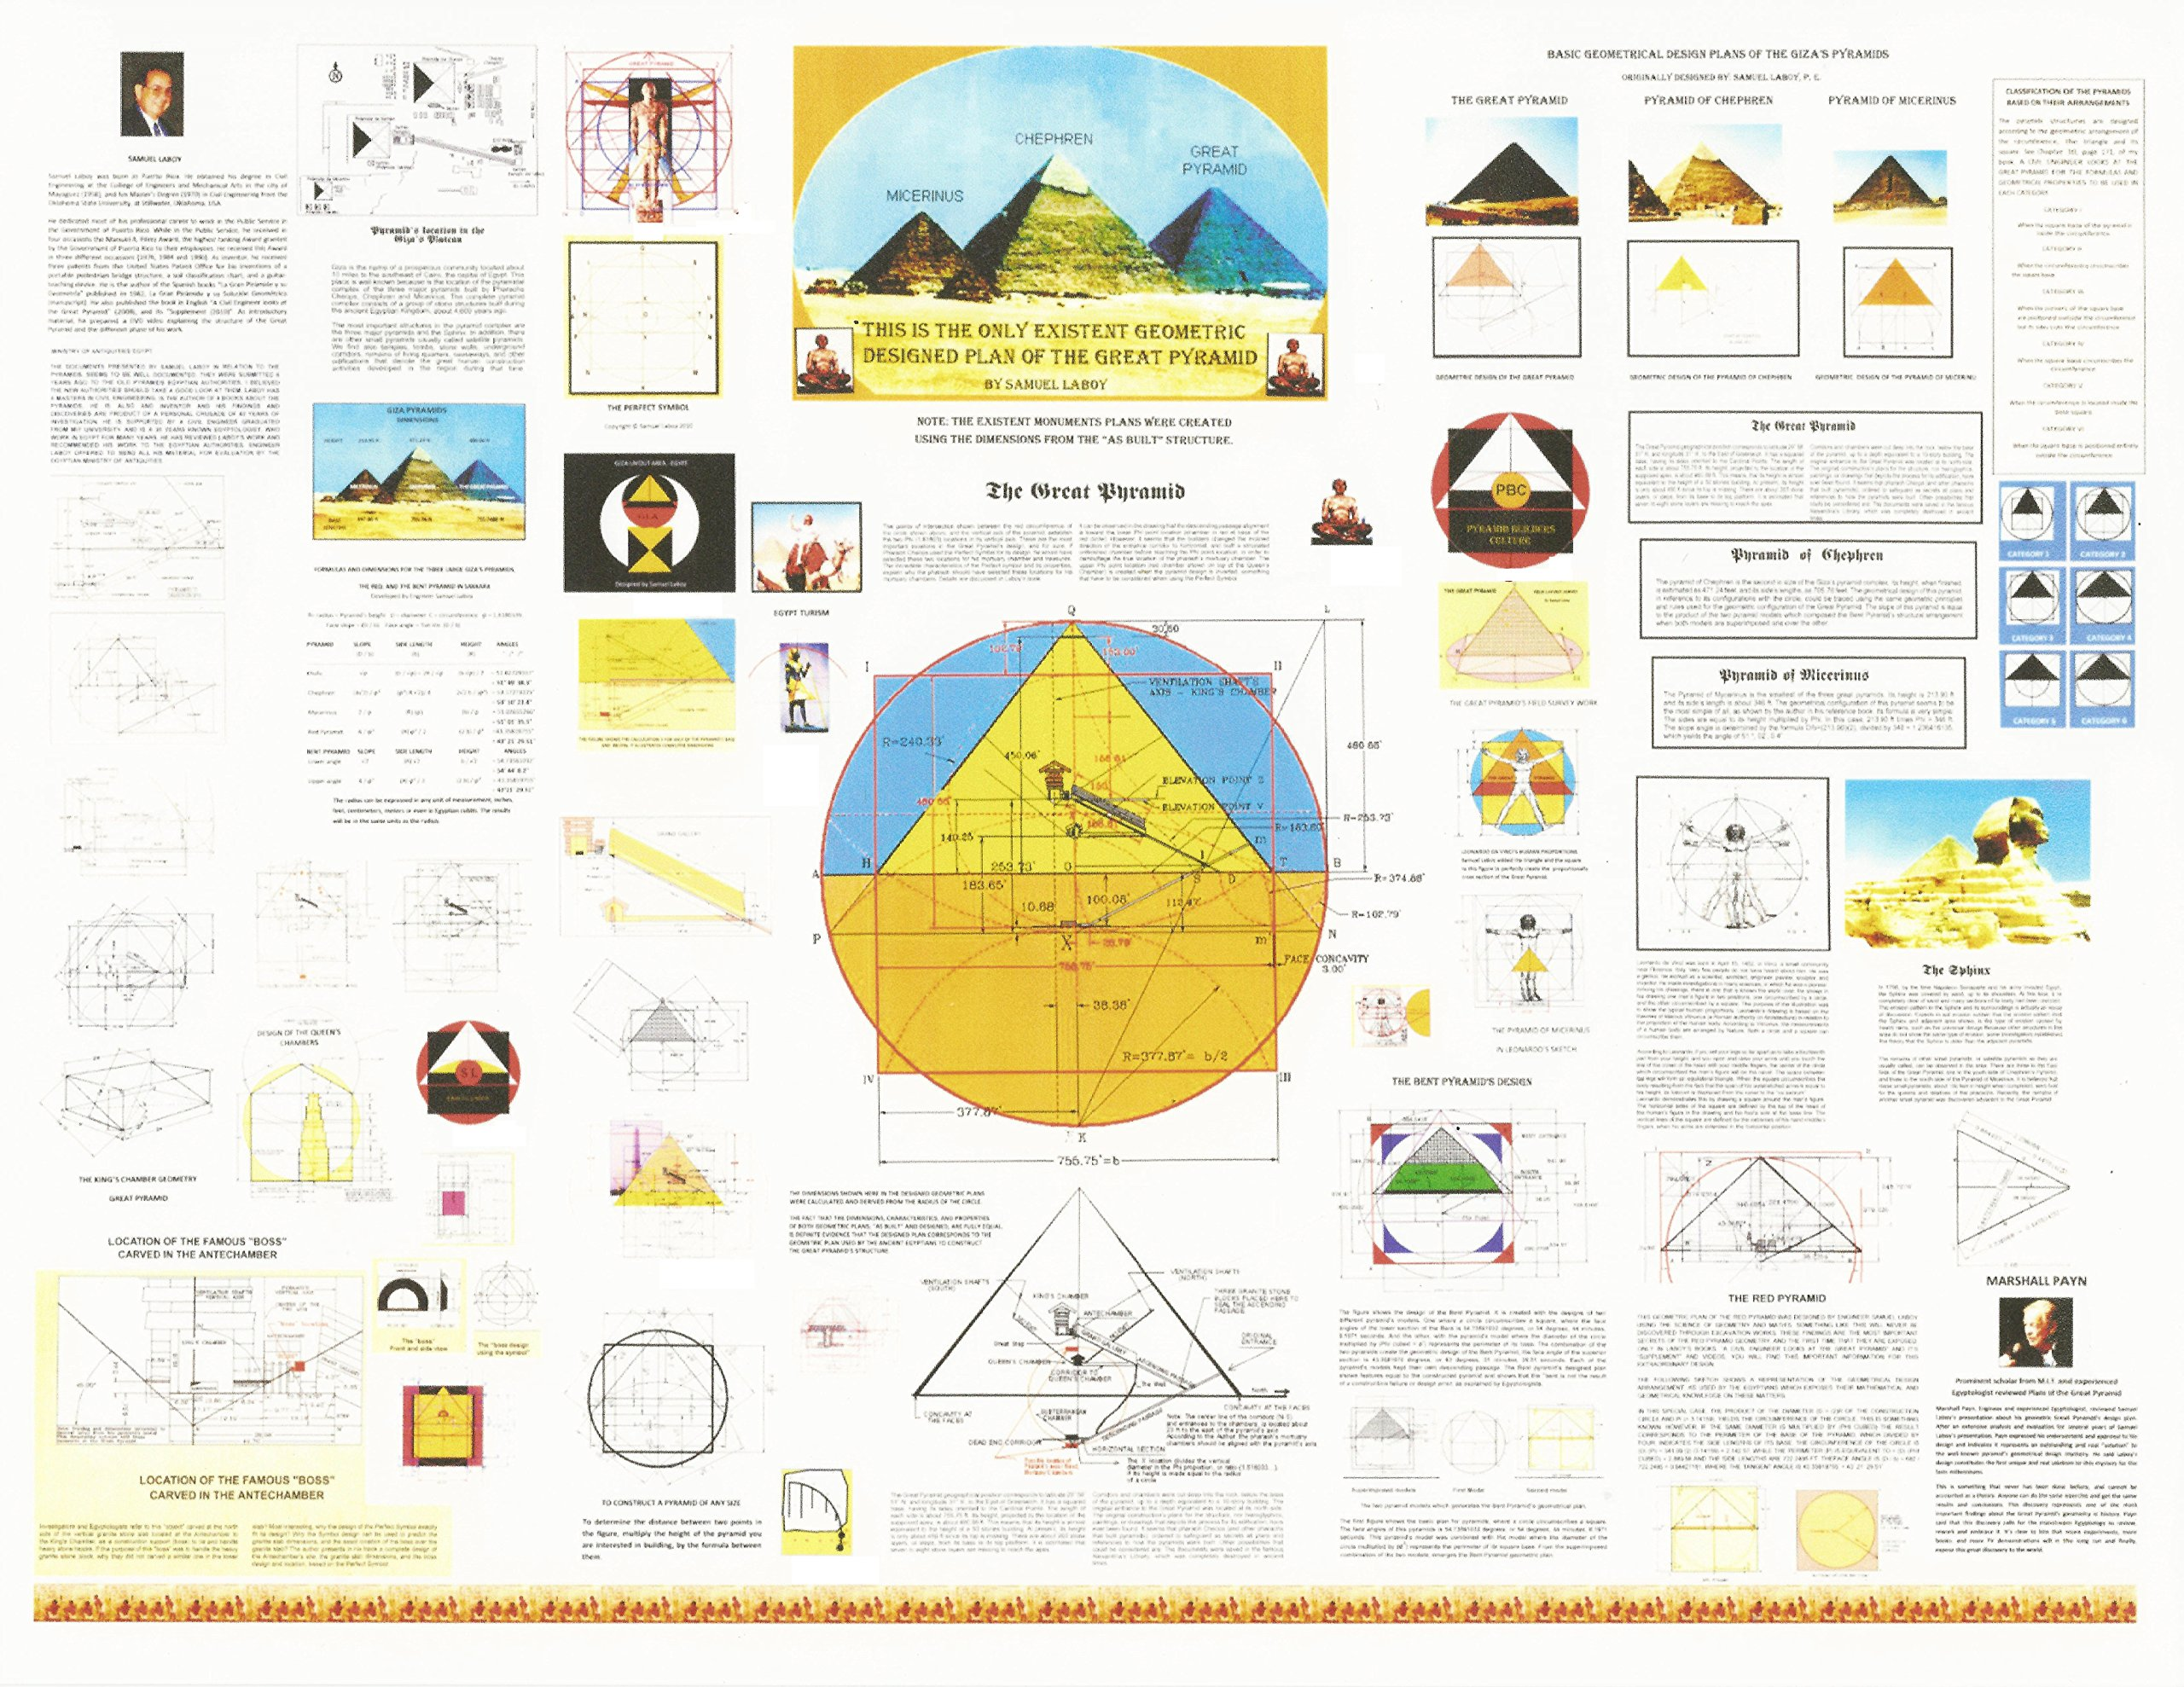 The only geometric designed plan of The Great Pyramid / with free Introduction DVD